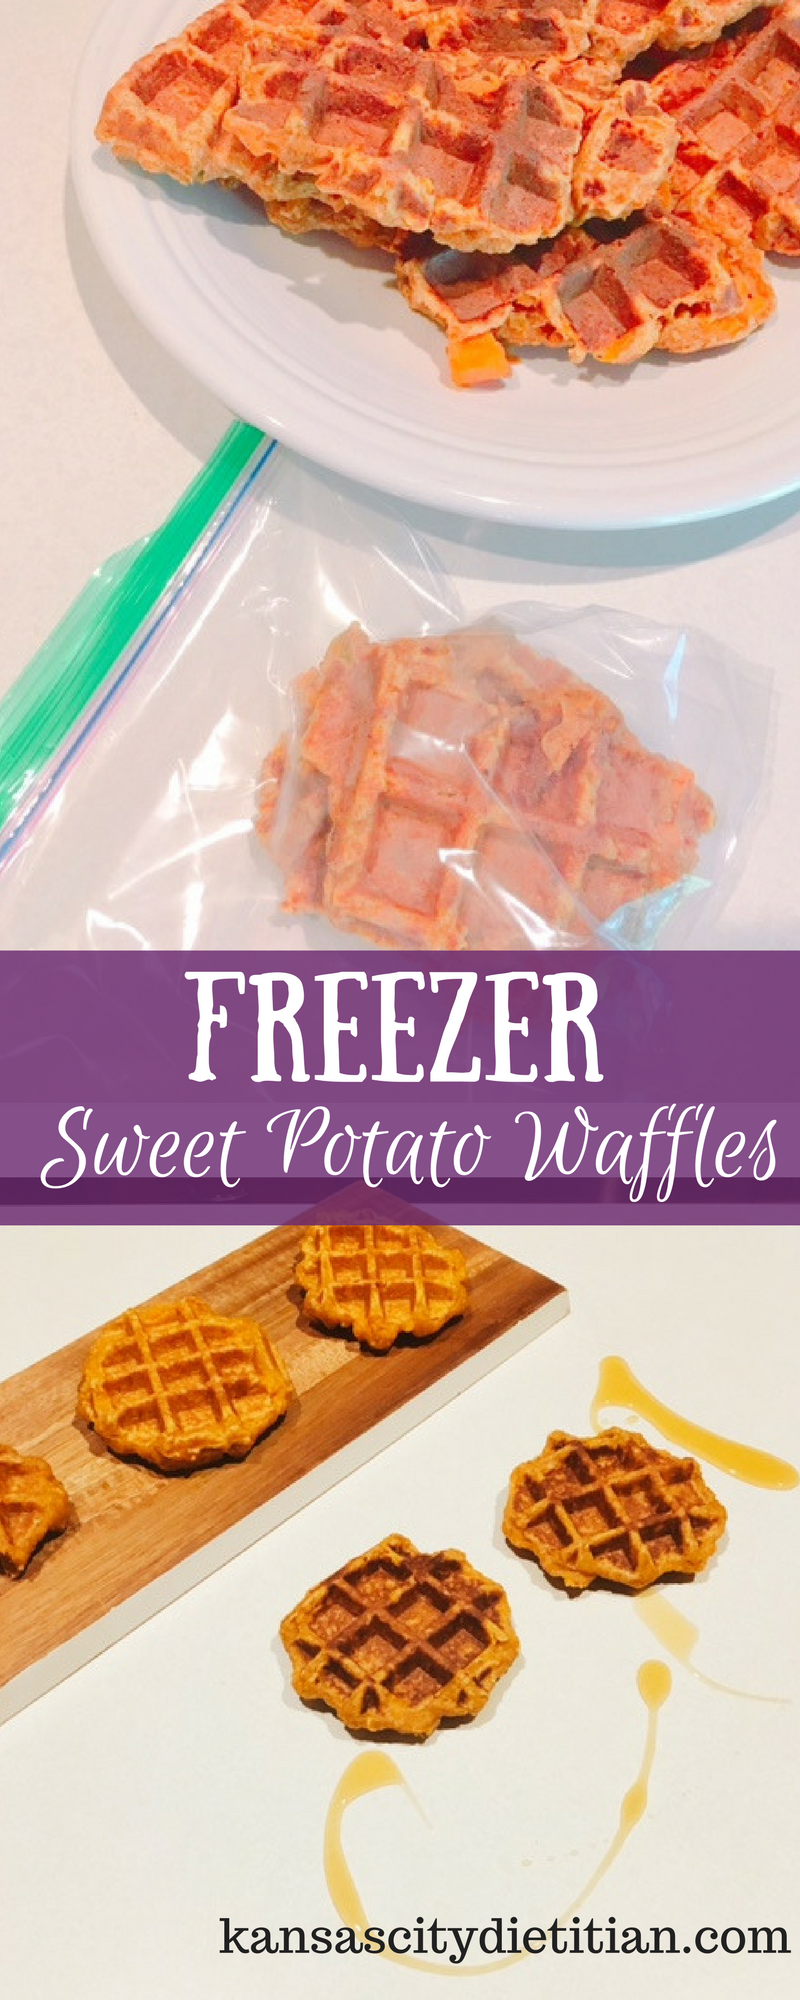 Freezer Sweet Potato Waffles